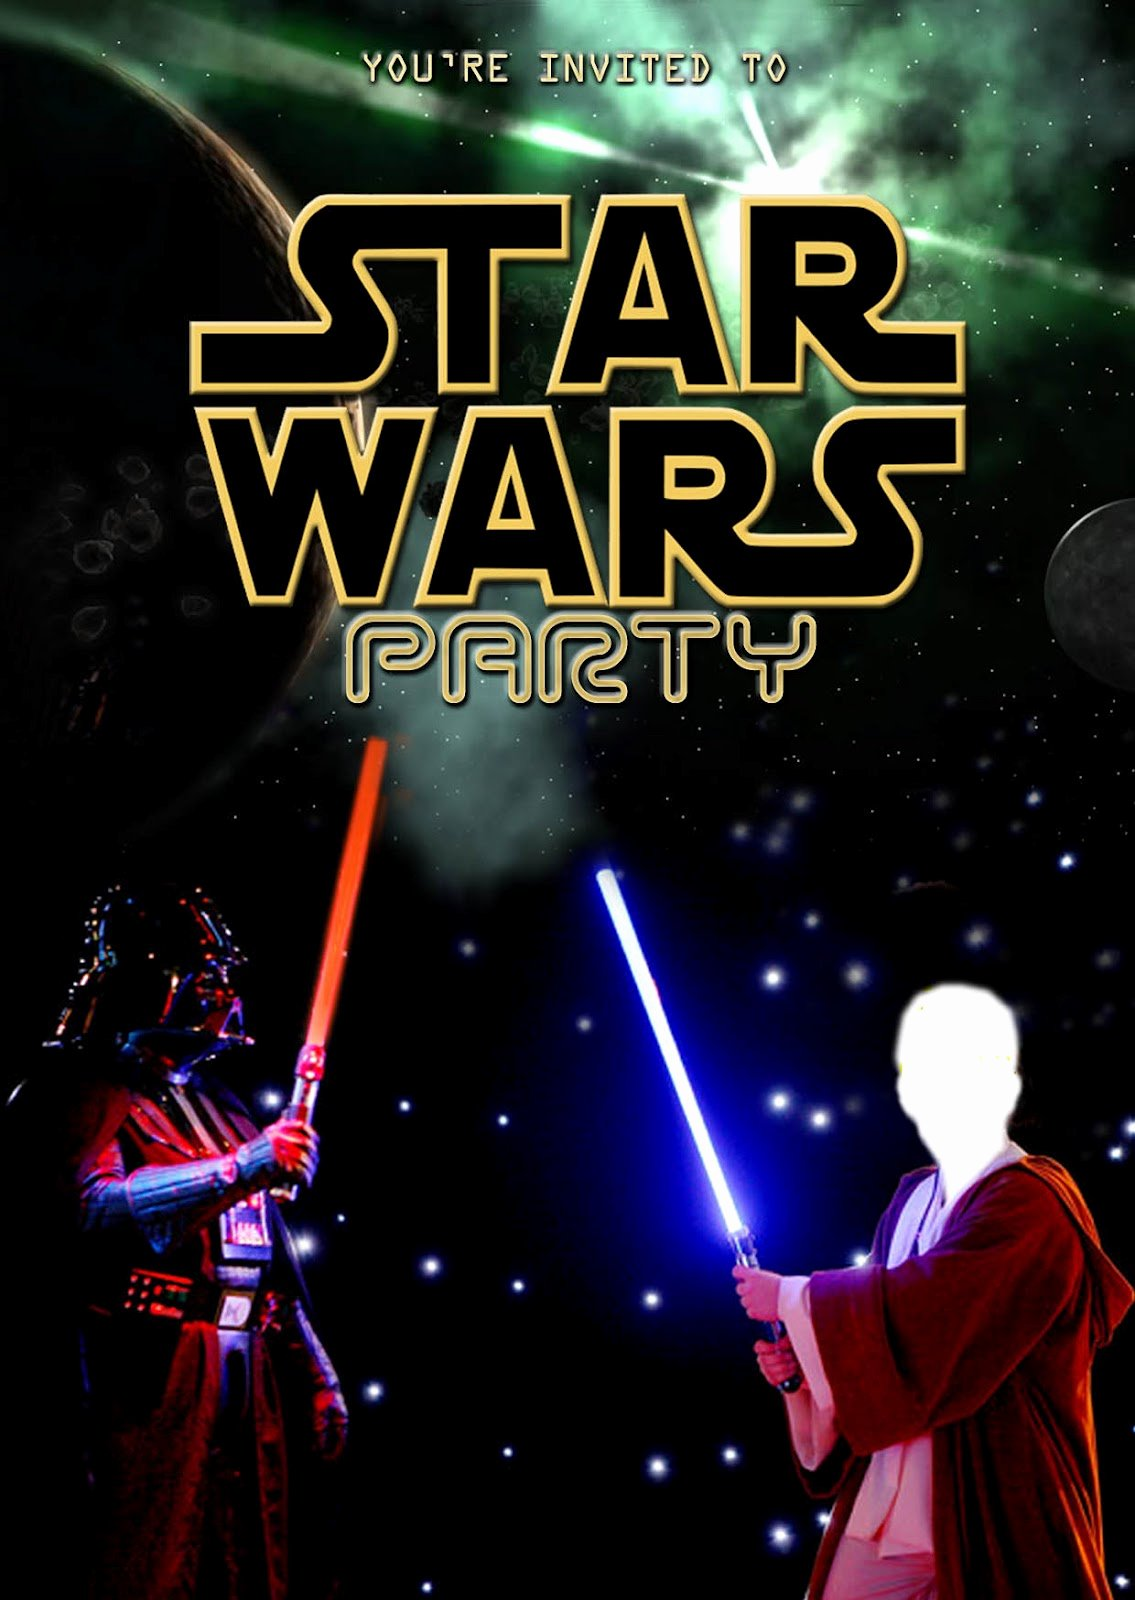 Printable Star Wars Invitation Inspirational Free Kids Party Invitations Star Wars Party Invitation